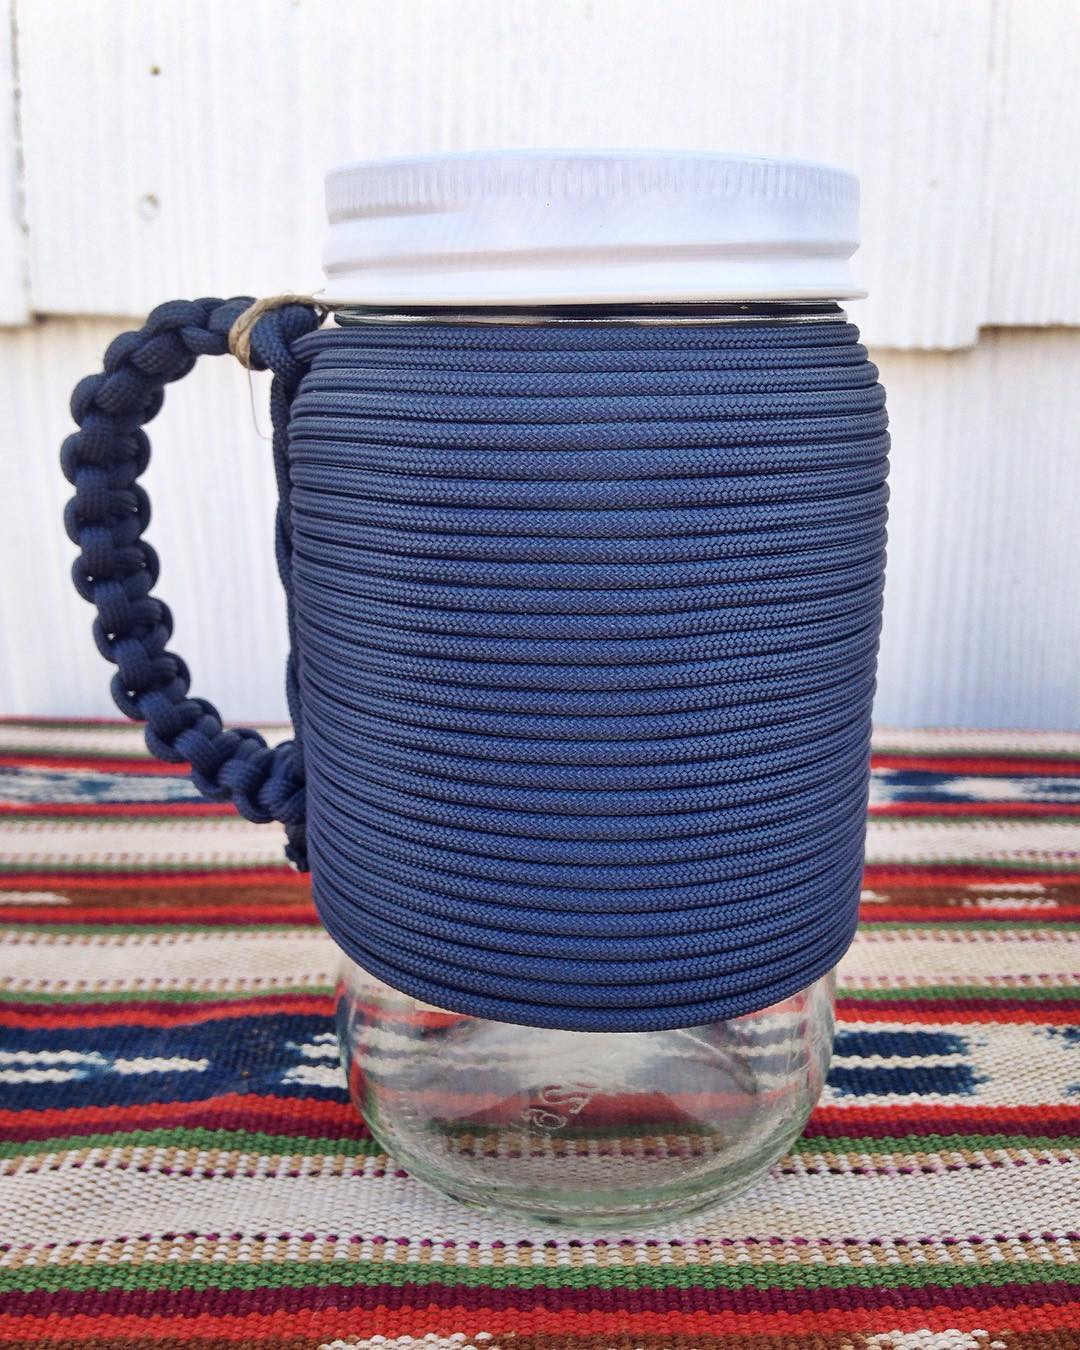 ~ Adventure Mug ~  We're restocked on the reusable Adventure Mug in both moss green and navy blue.  Fill it up and hit the road. The screw on cap ensures no leaks while it rolls around the floor of your rig. The sturdy, hand wrapped paracord handle...